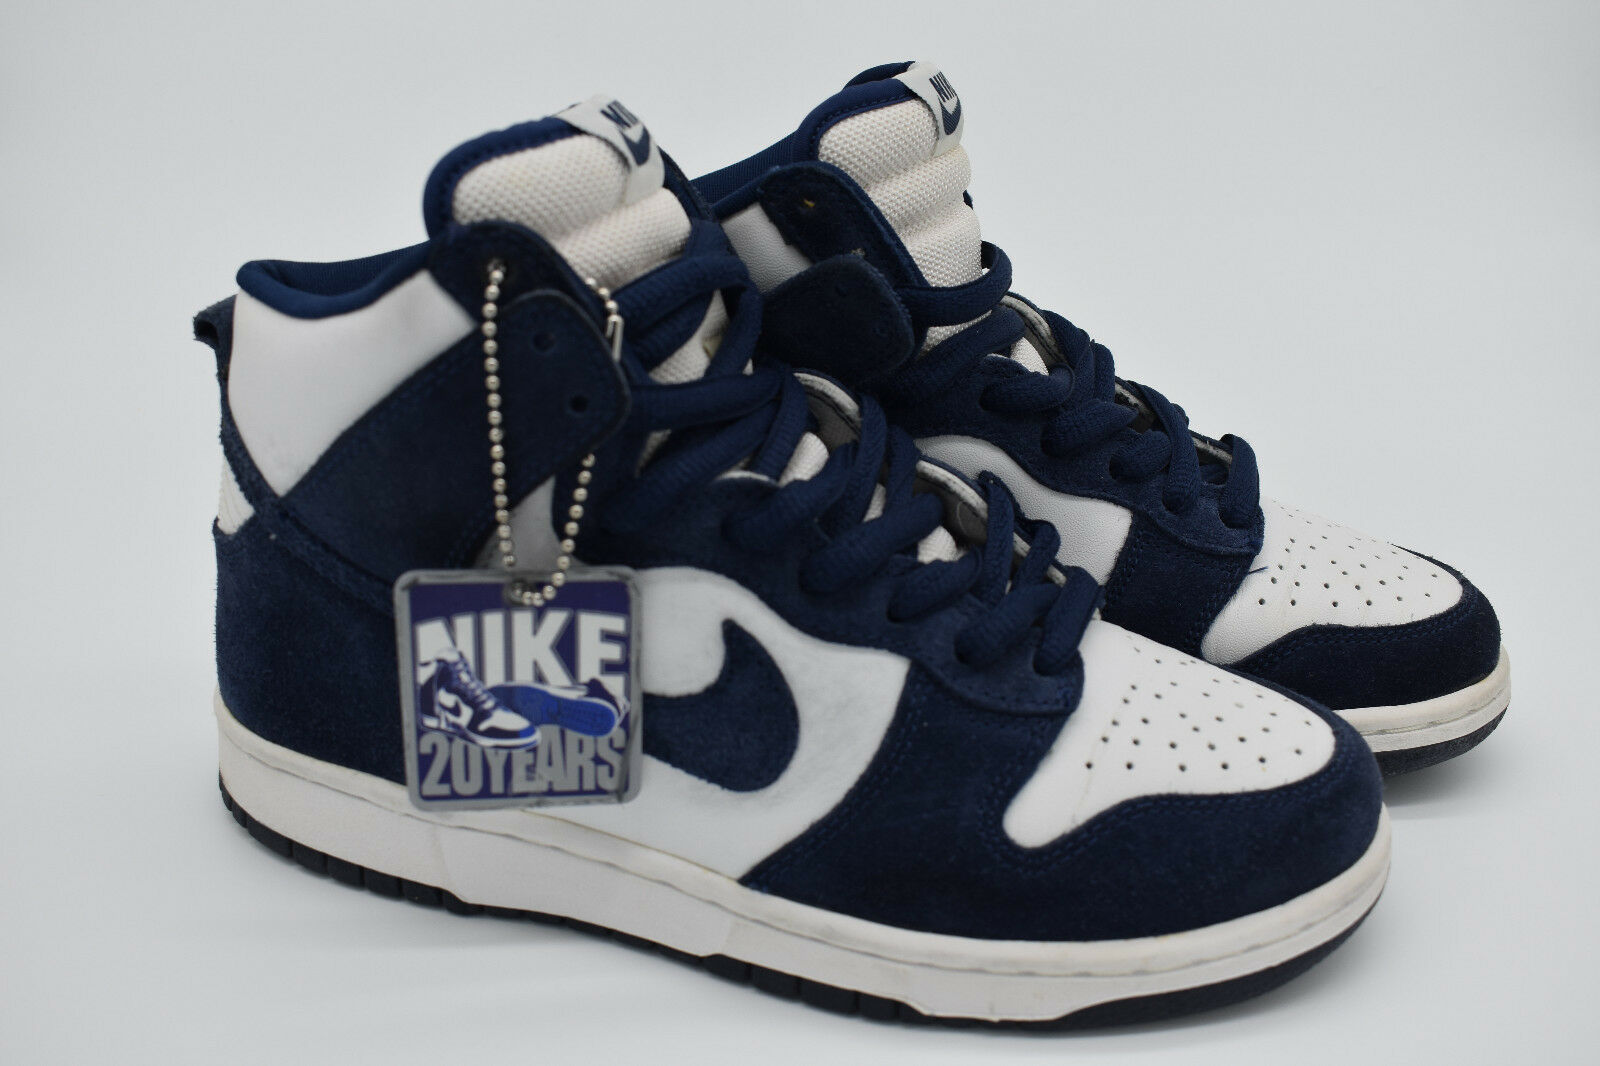 Nike Dunk High SB Be True to Your School 20th Anniversary Villanova  - Size 6 US